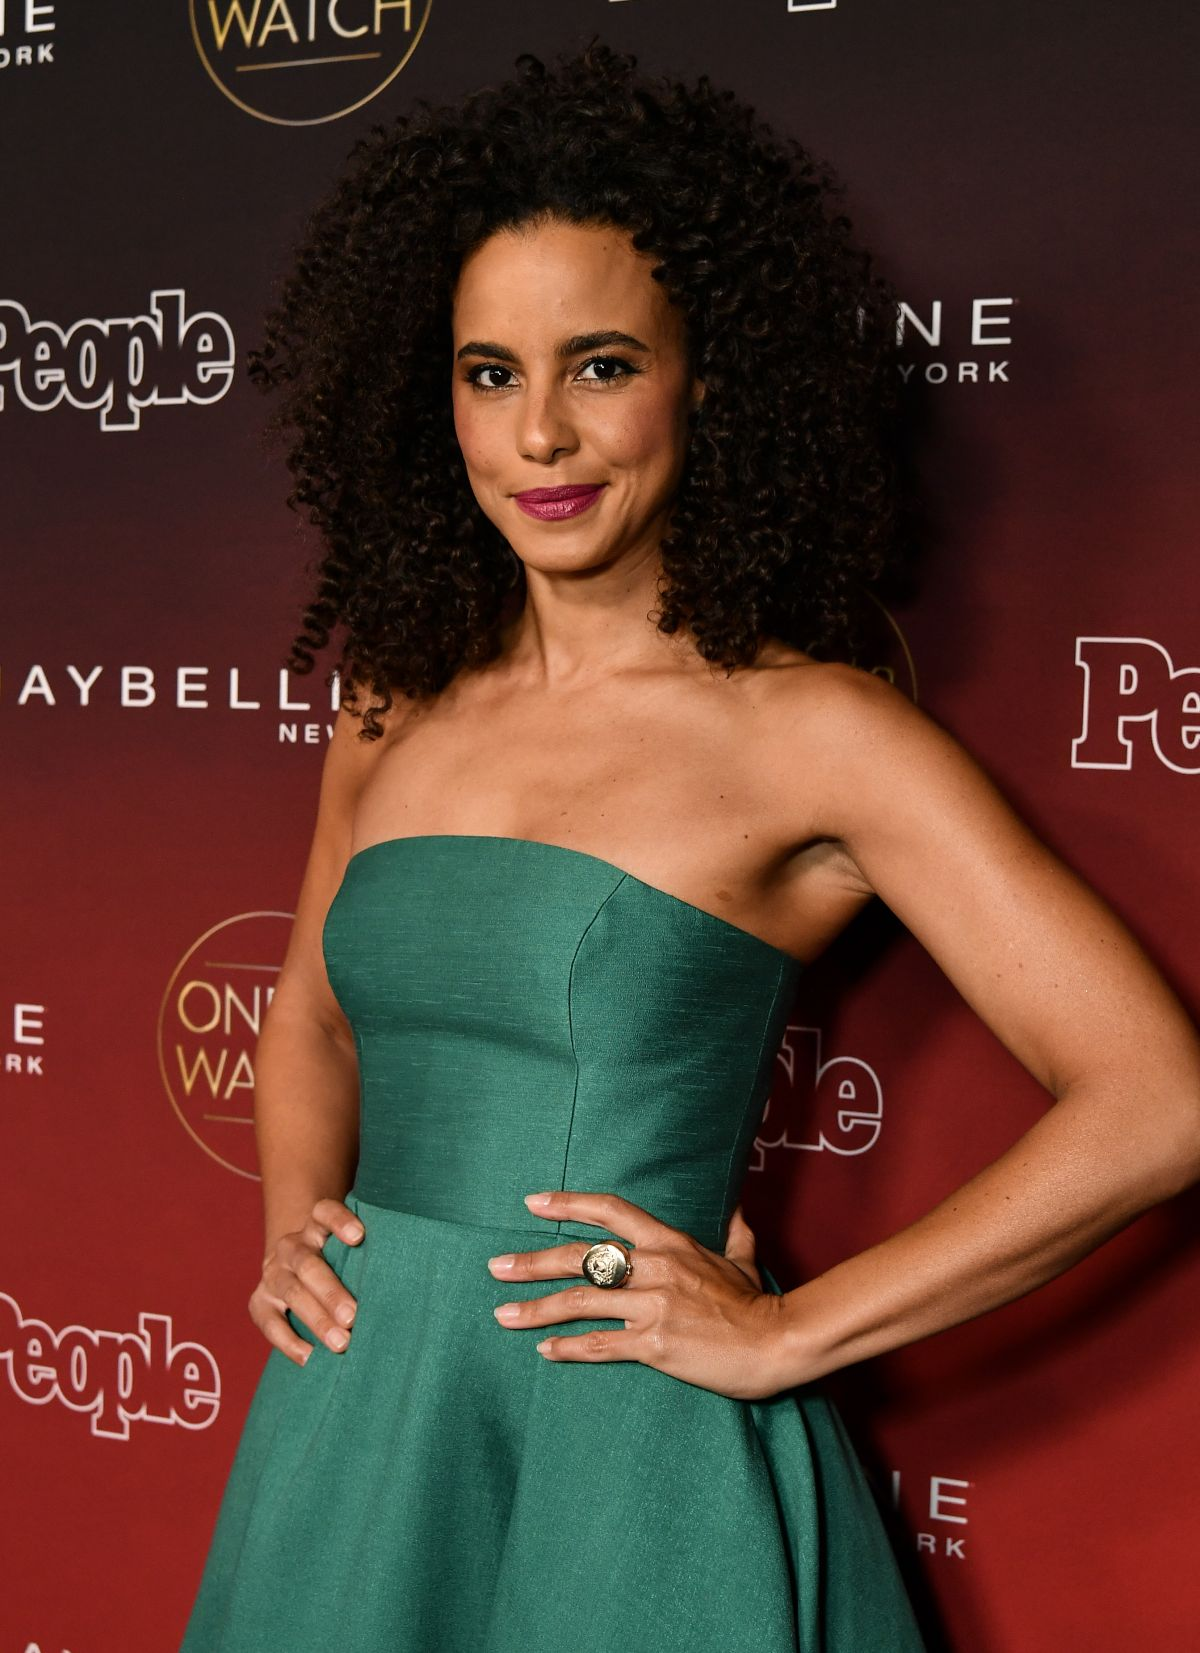 Swimsuit Parisa Fitz-Henley naked (83 photos) Fappening, Snapchat, butt